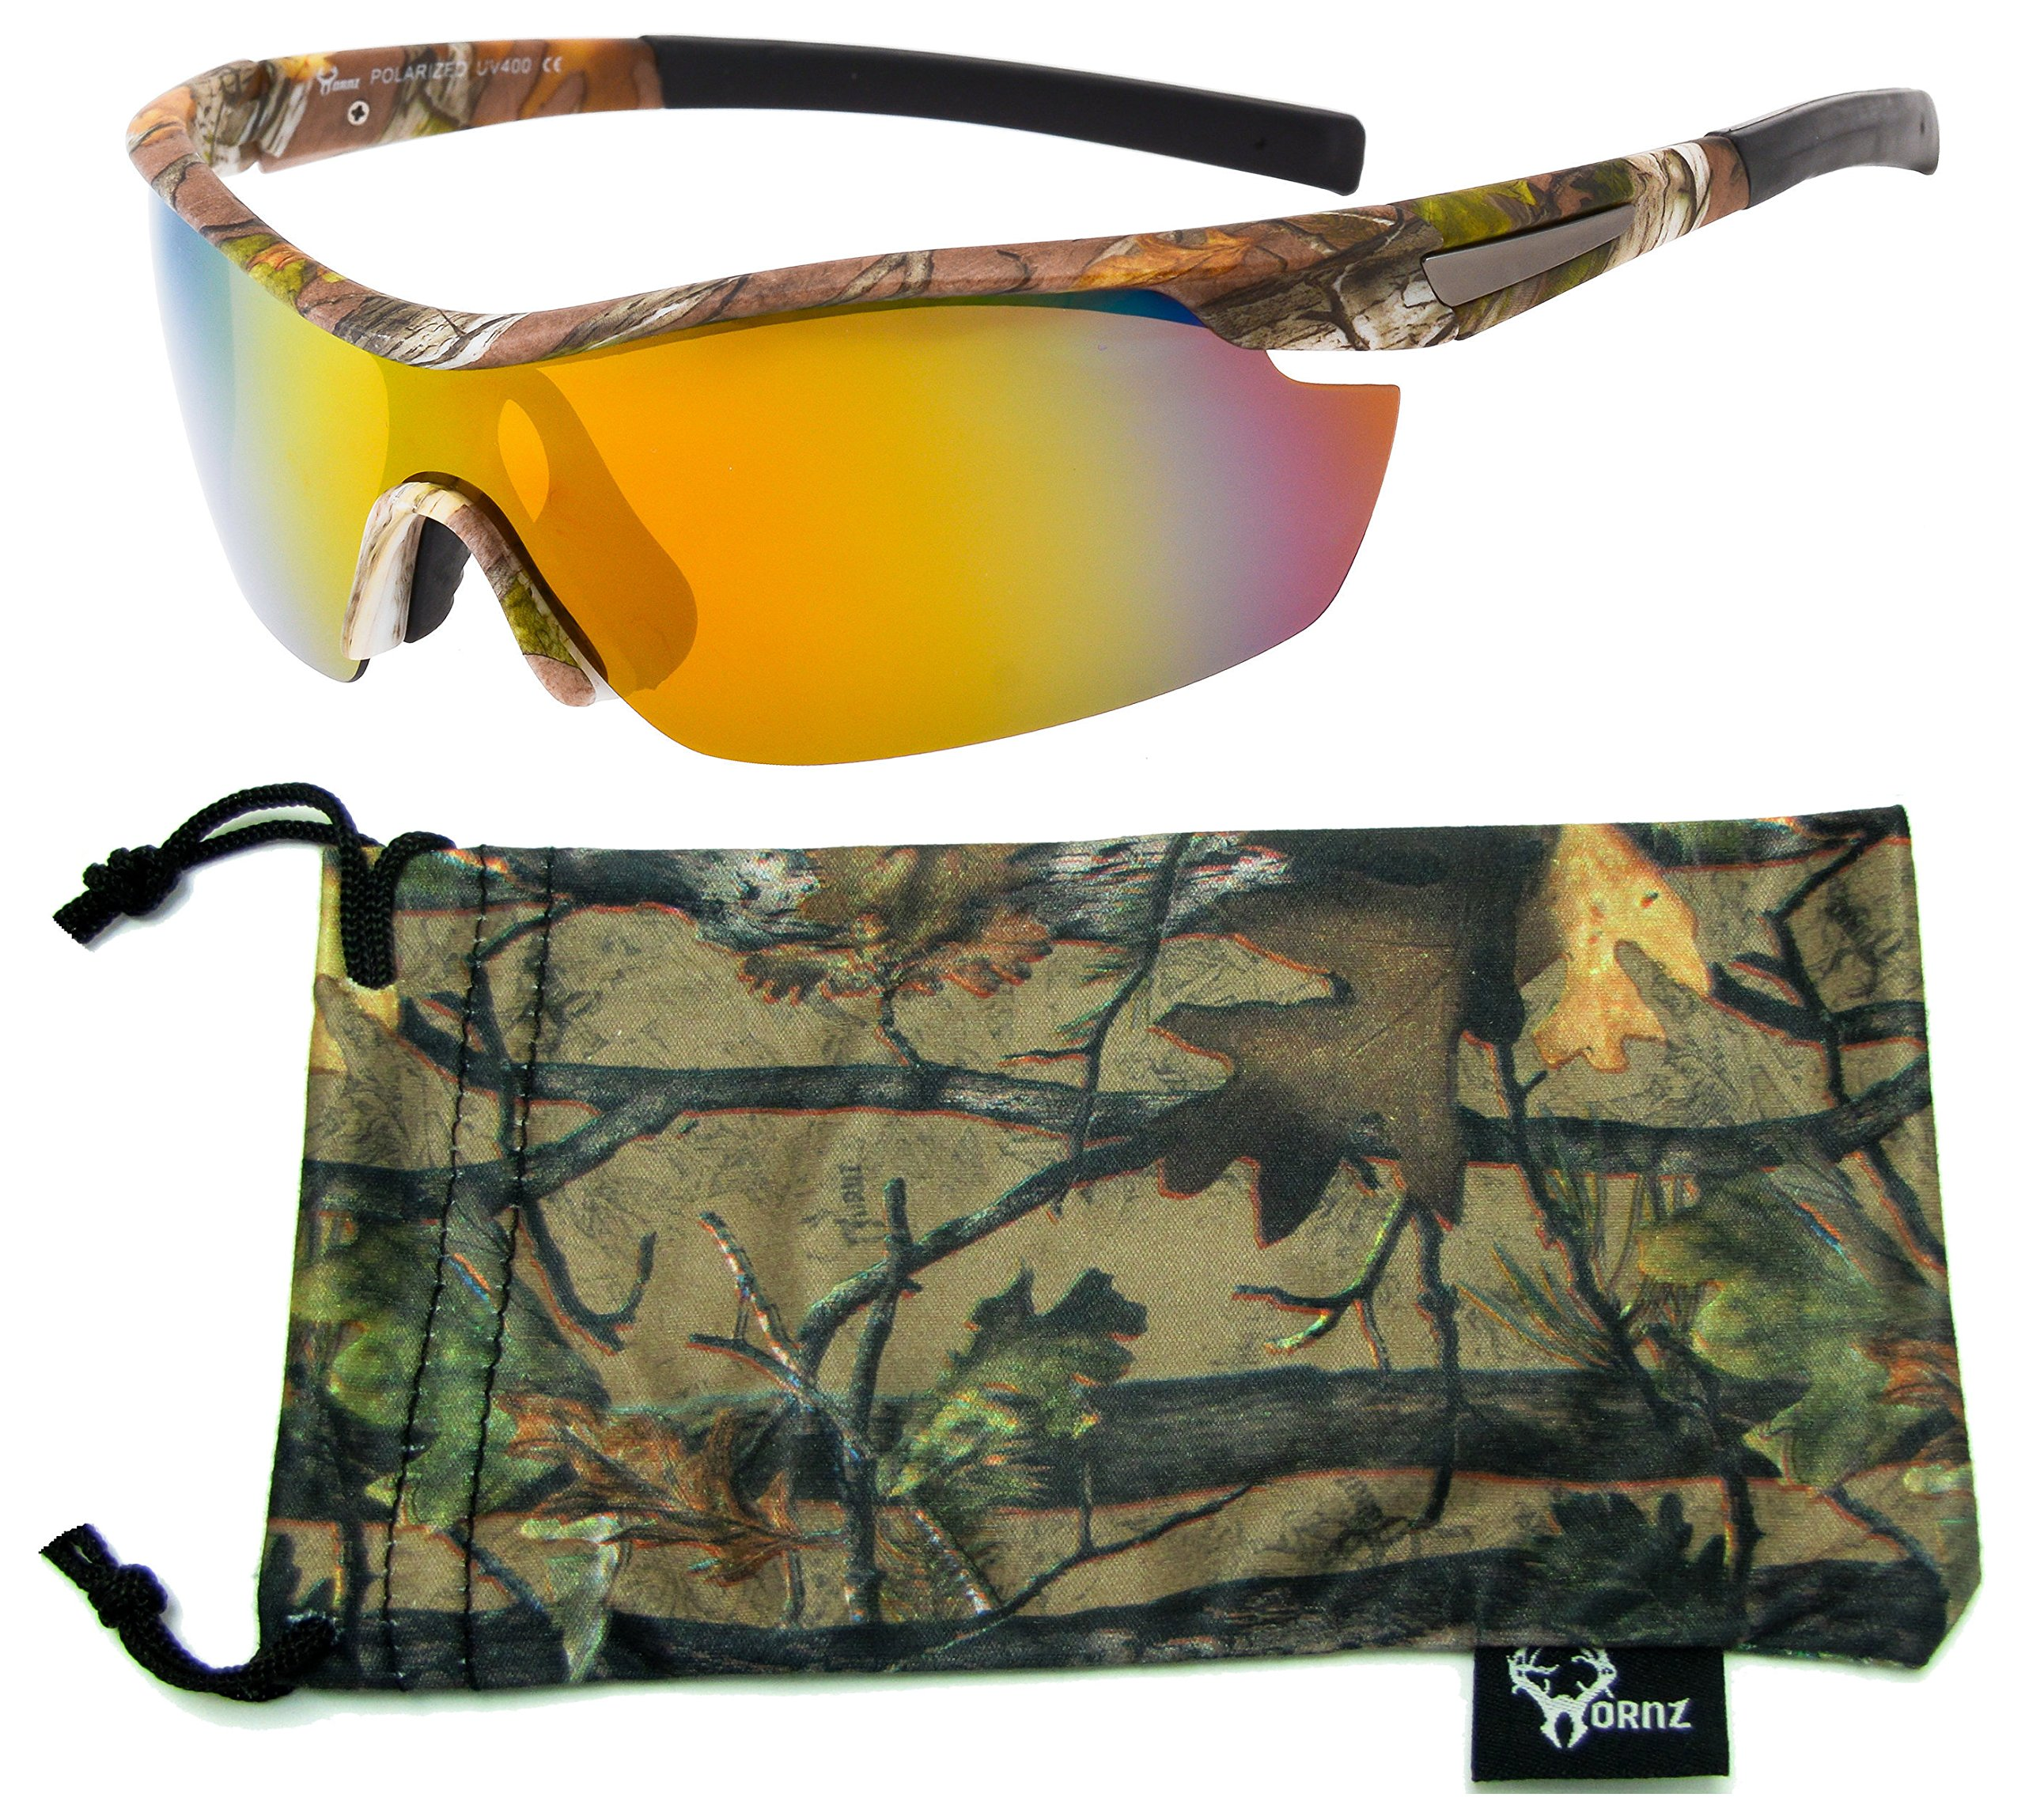 Hornz Brown Forrest Camouflage Polarized Sunglasses for Men Wrap Around Sport Frame & Free Matching Microfiber Pouch - Brown Camo Frame - Orange Lens